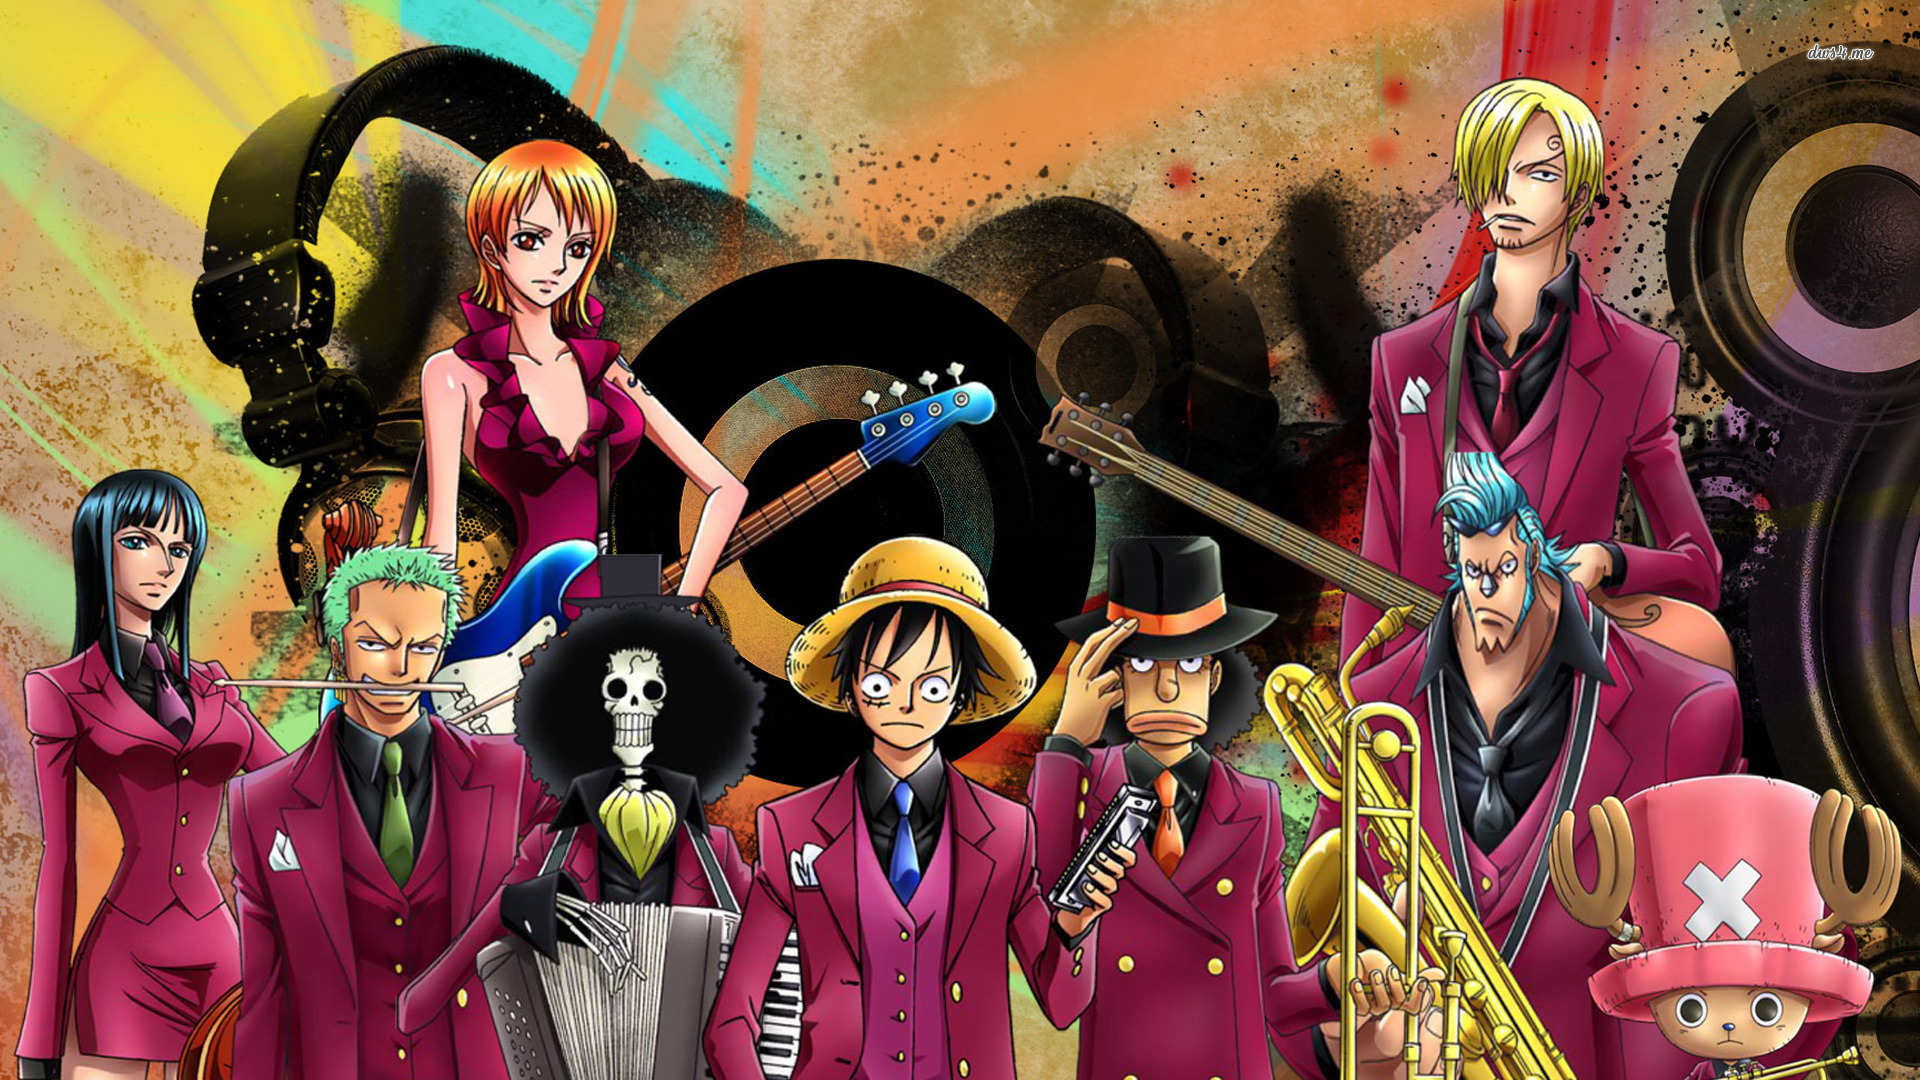 Description Cool One Piece Wallpaper is a hi res Wallpaper for pc 1920x1080